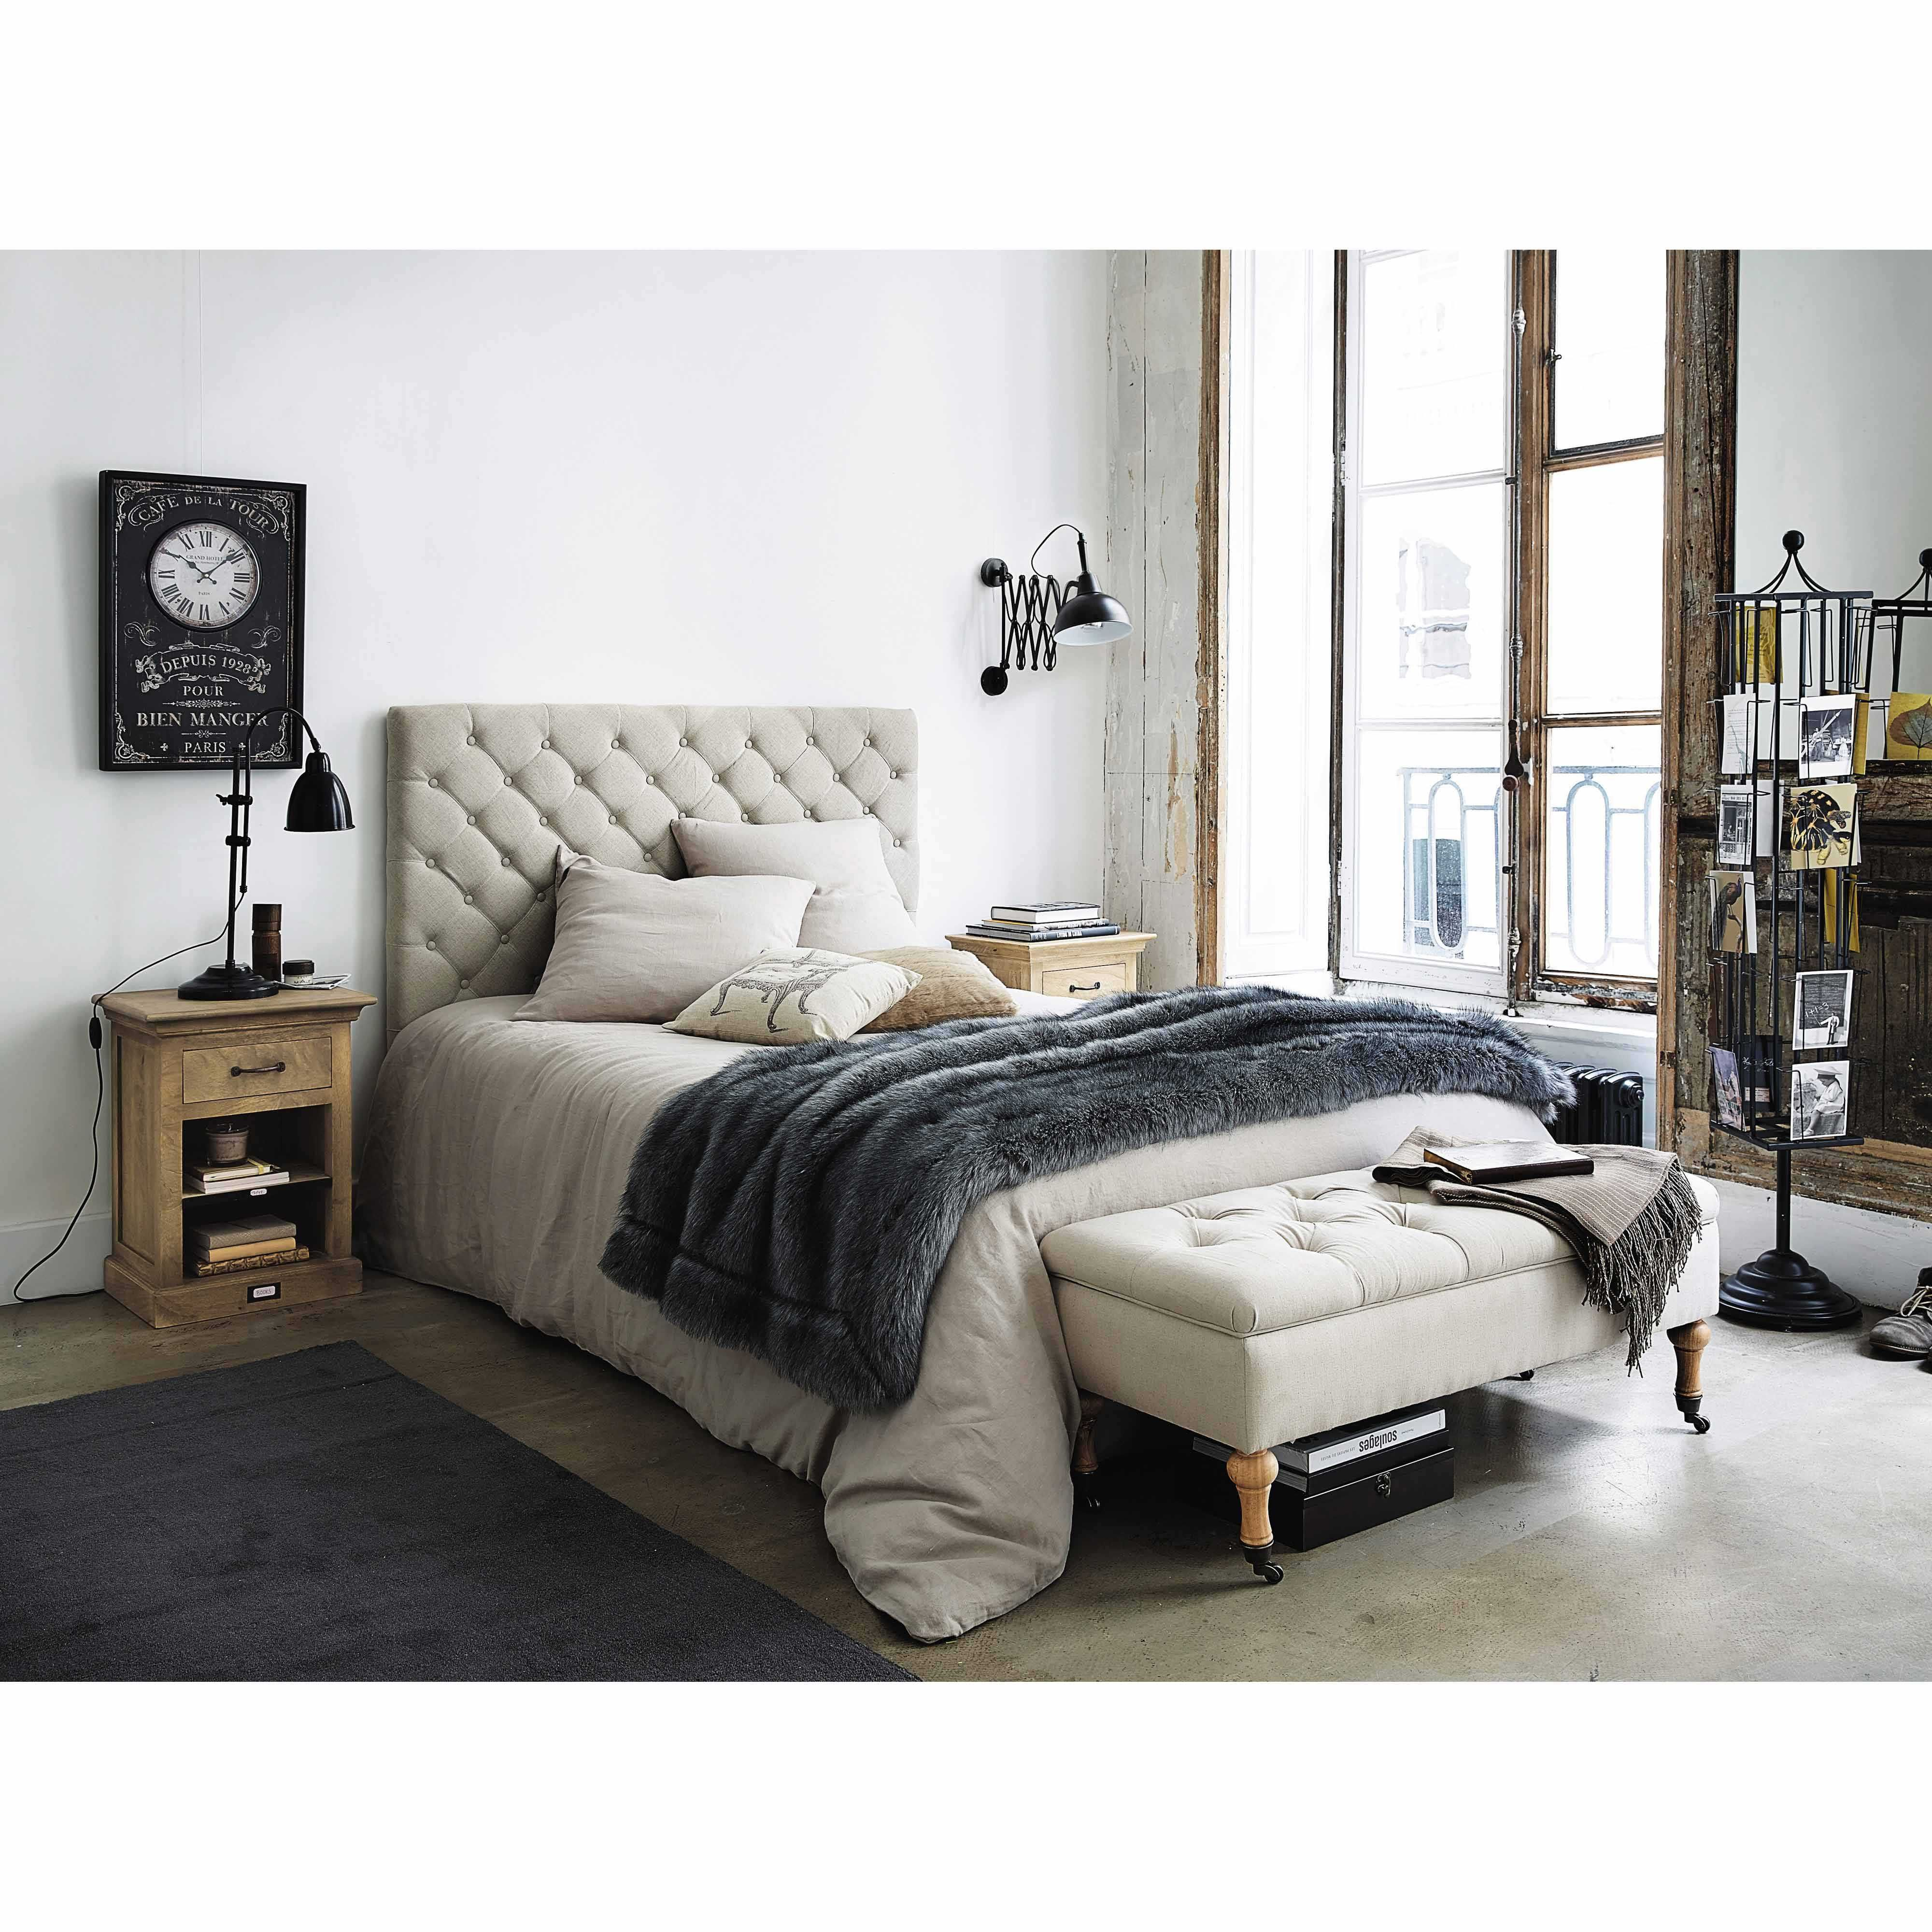 awesome tte de lit capitonne vintage en lin l cm maisons du monde with lit baldaquin maison du monde. Black Bedroom Furniture Sets. Home Design Ideas